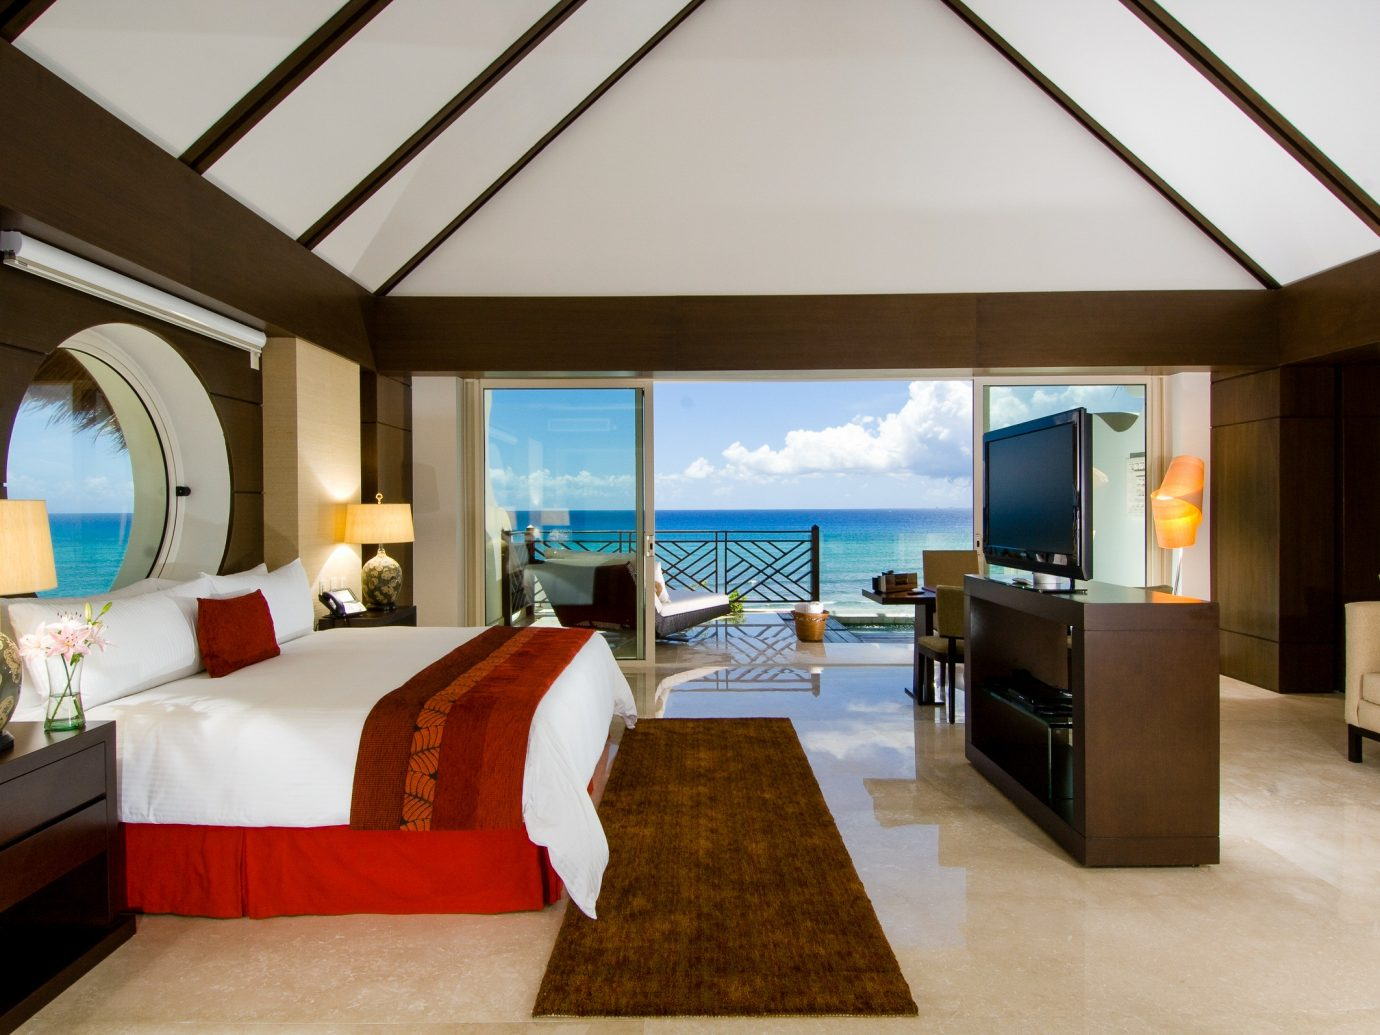 Bedroom at Grand Velas Riviera Maya